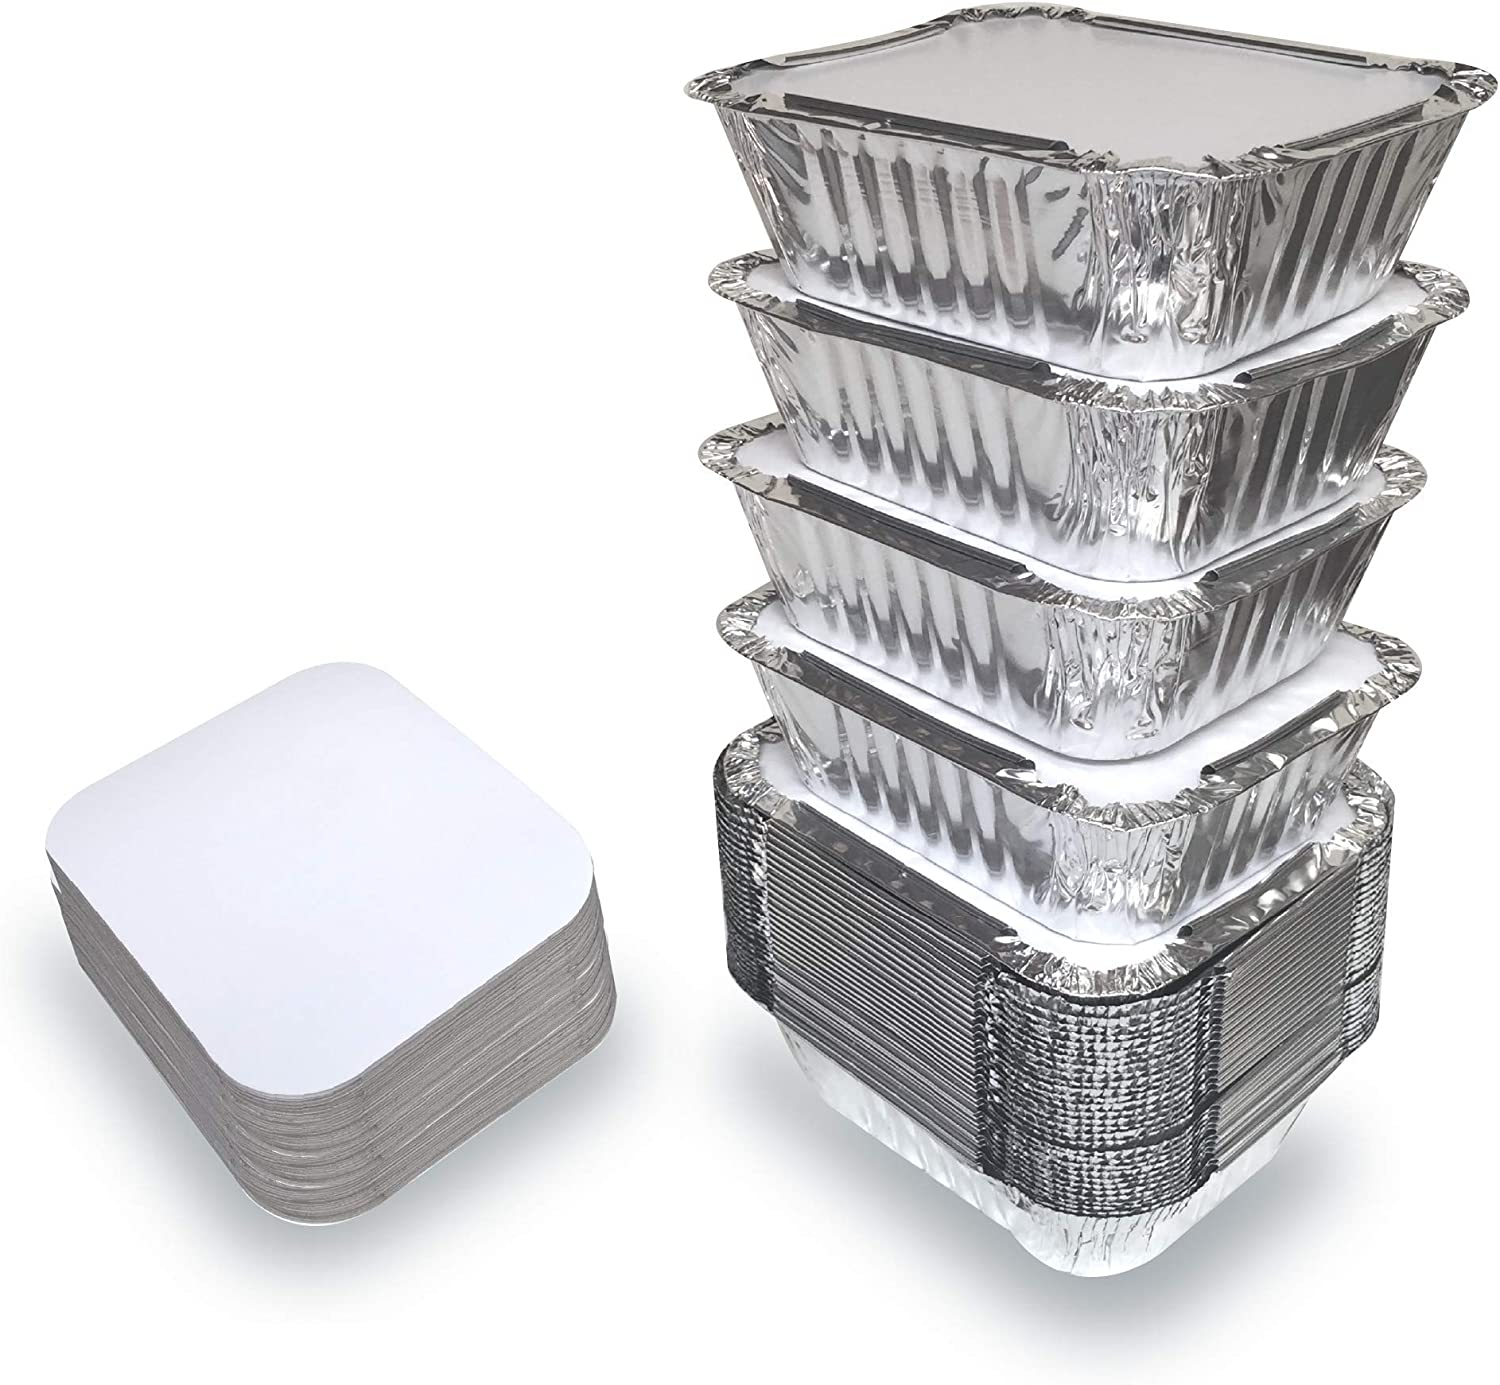 Amazon Com 55 Pack 1lb Aluminum Foil Pan Containers With Lids Take Out Pans Food Containers Disposable Easy Pack From Spare 1lb Capacity 5 5 X 4 5 X 1 9 Small Size